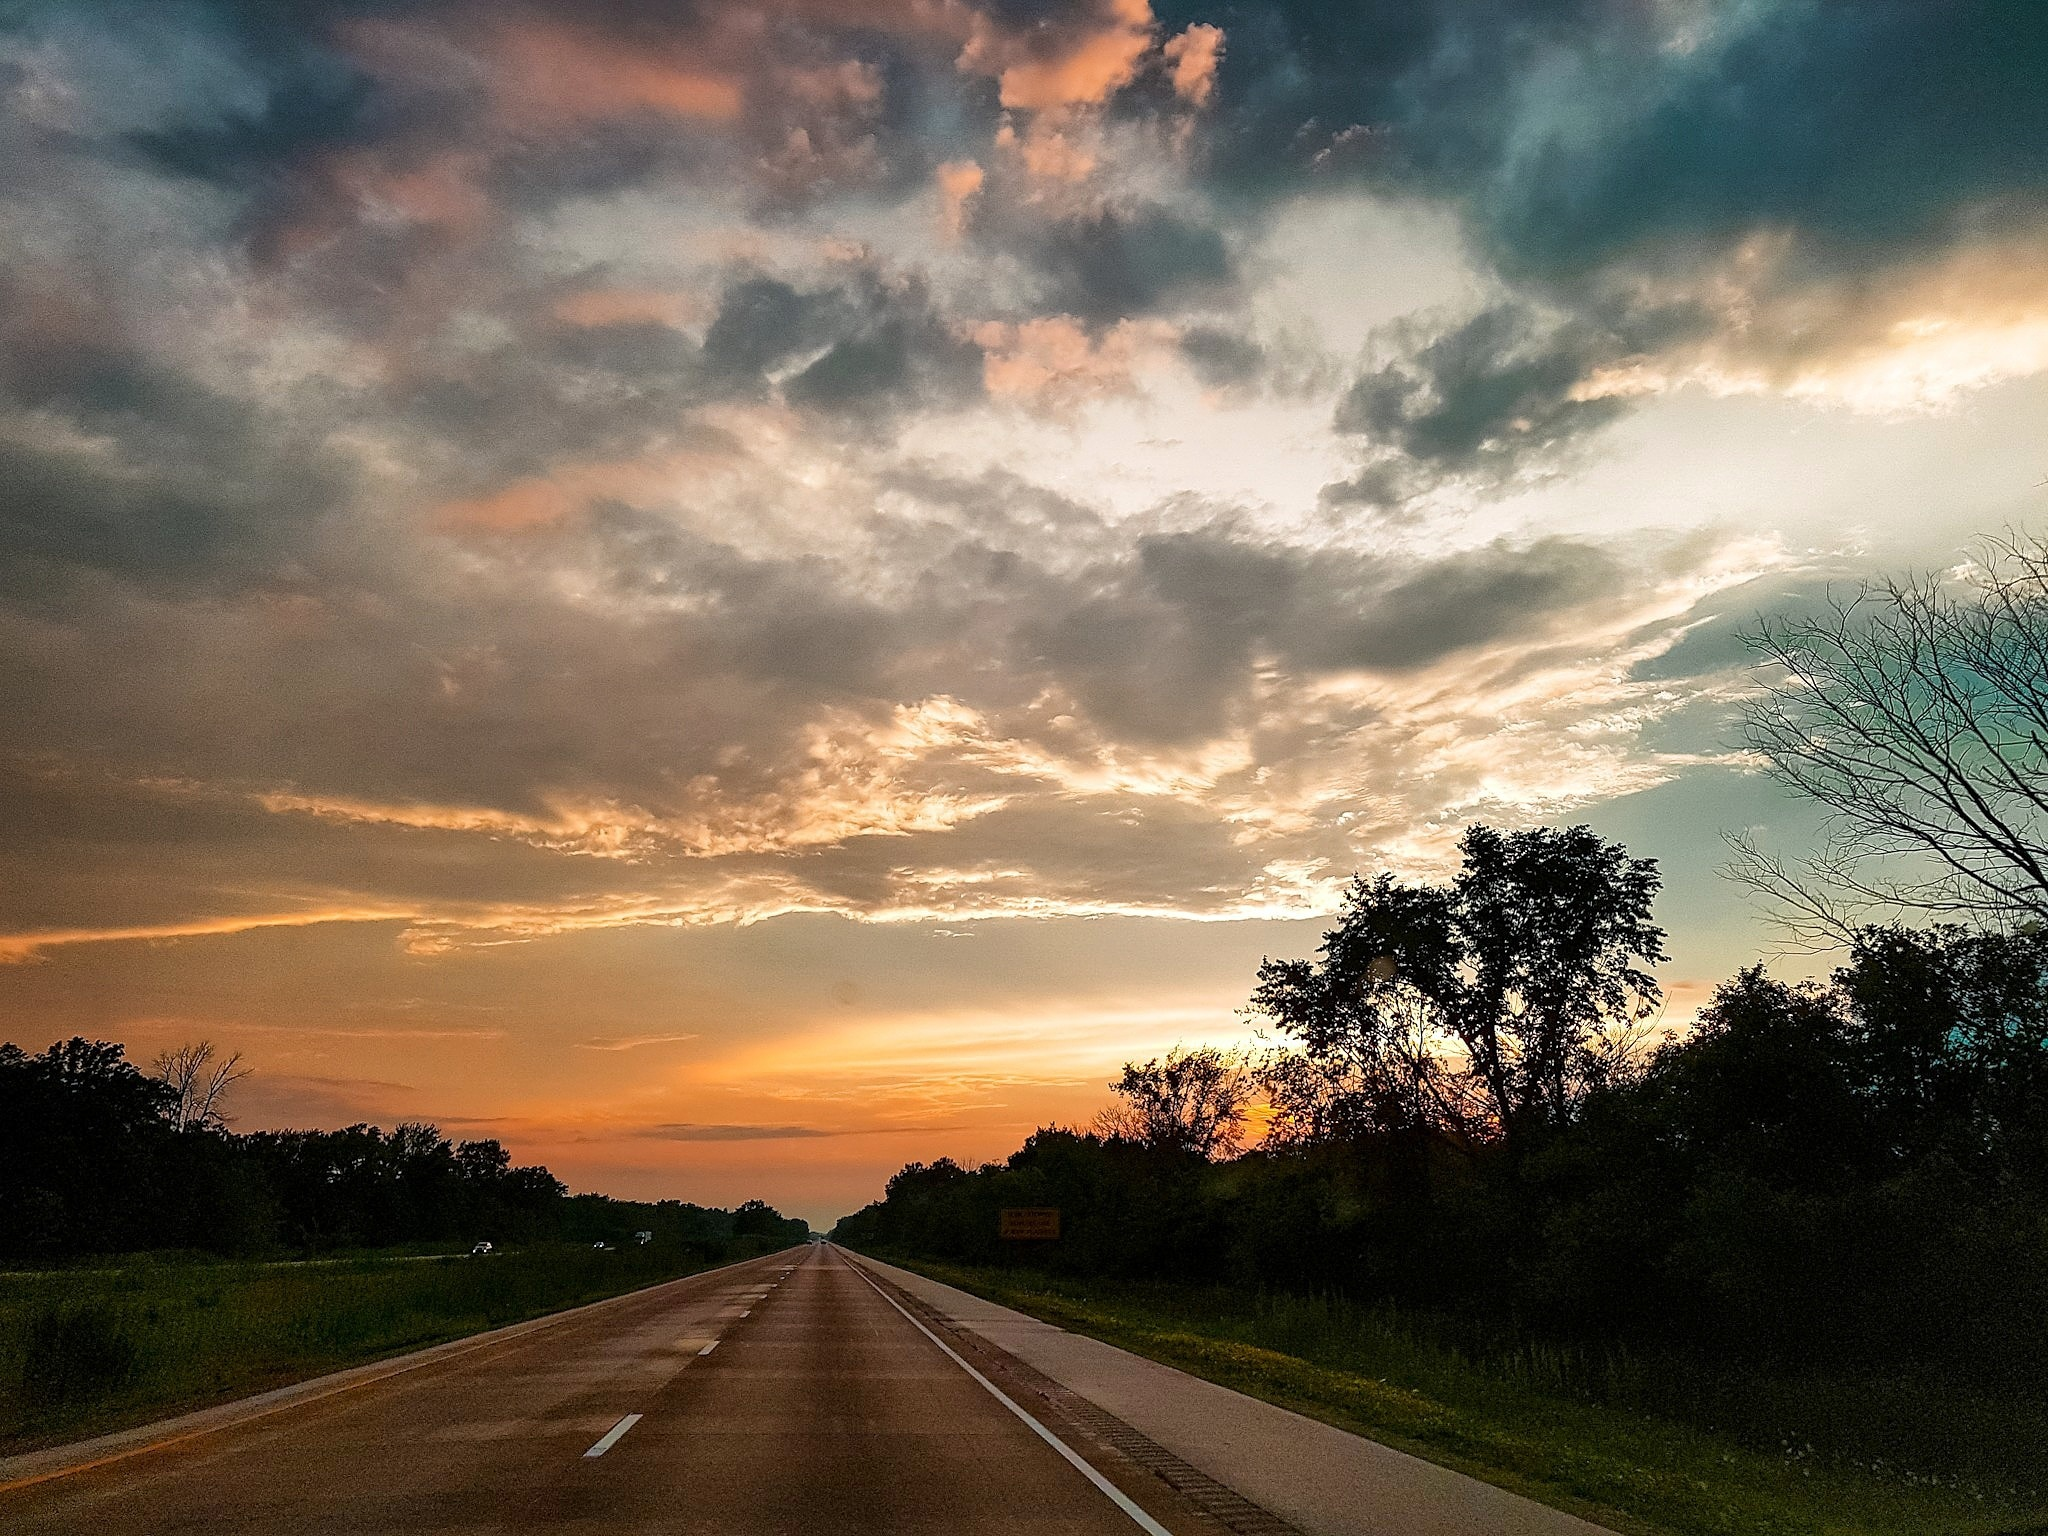 Life on the Road by Miq Mustafa